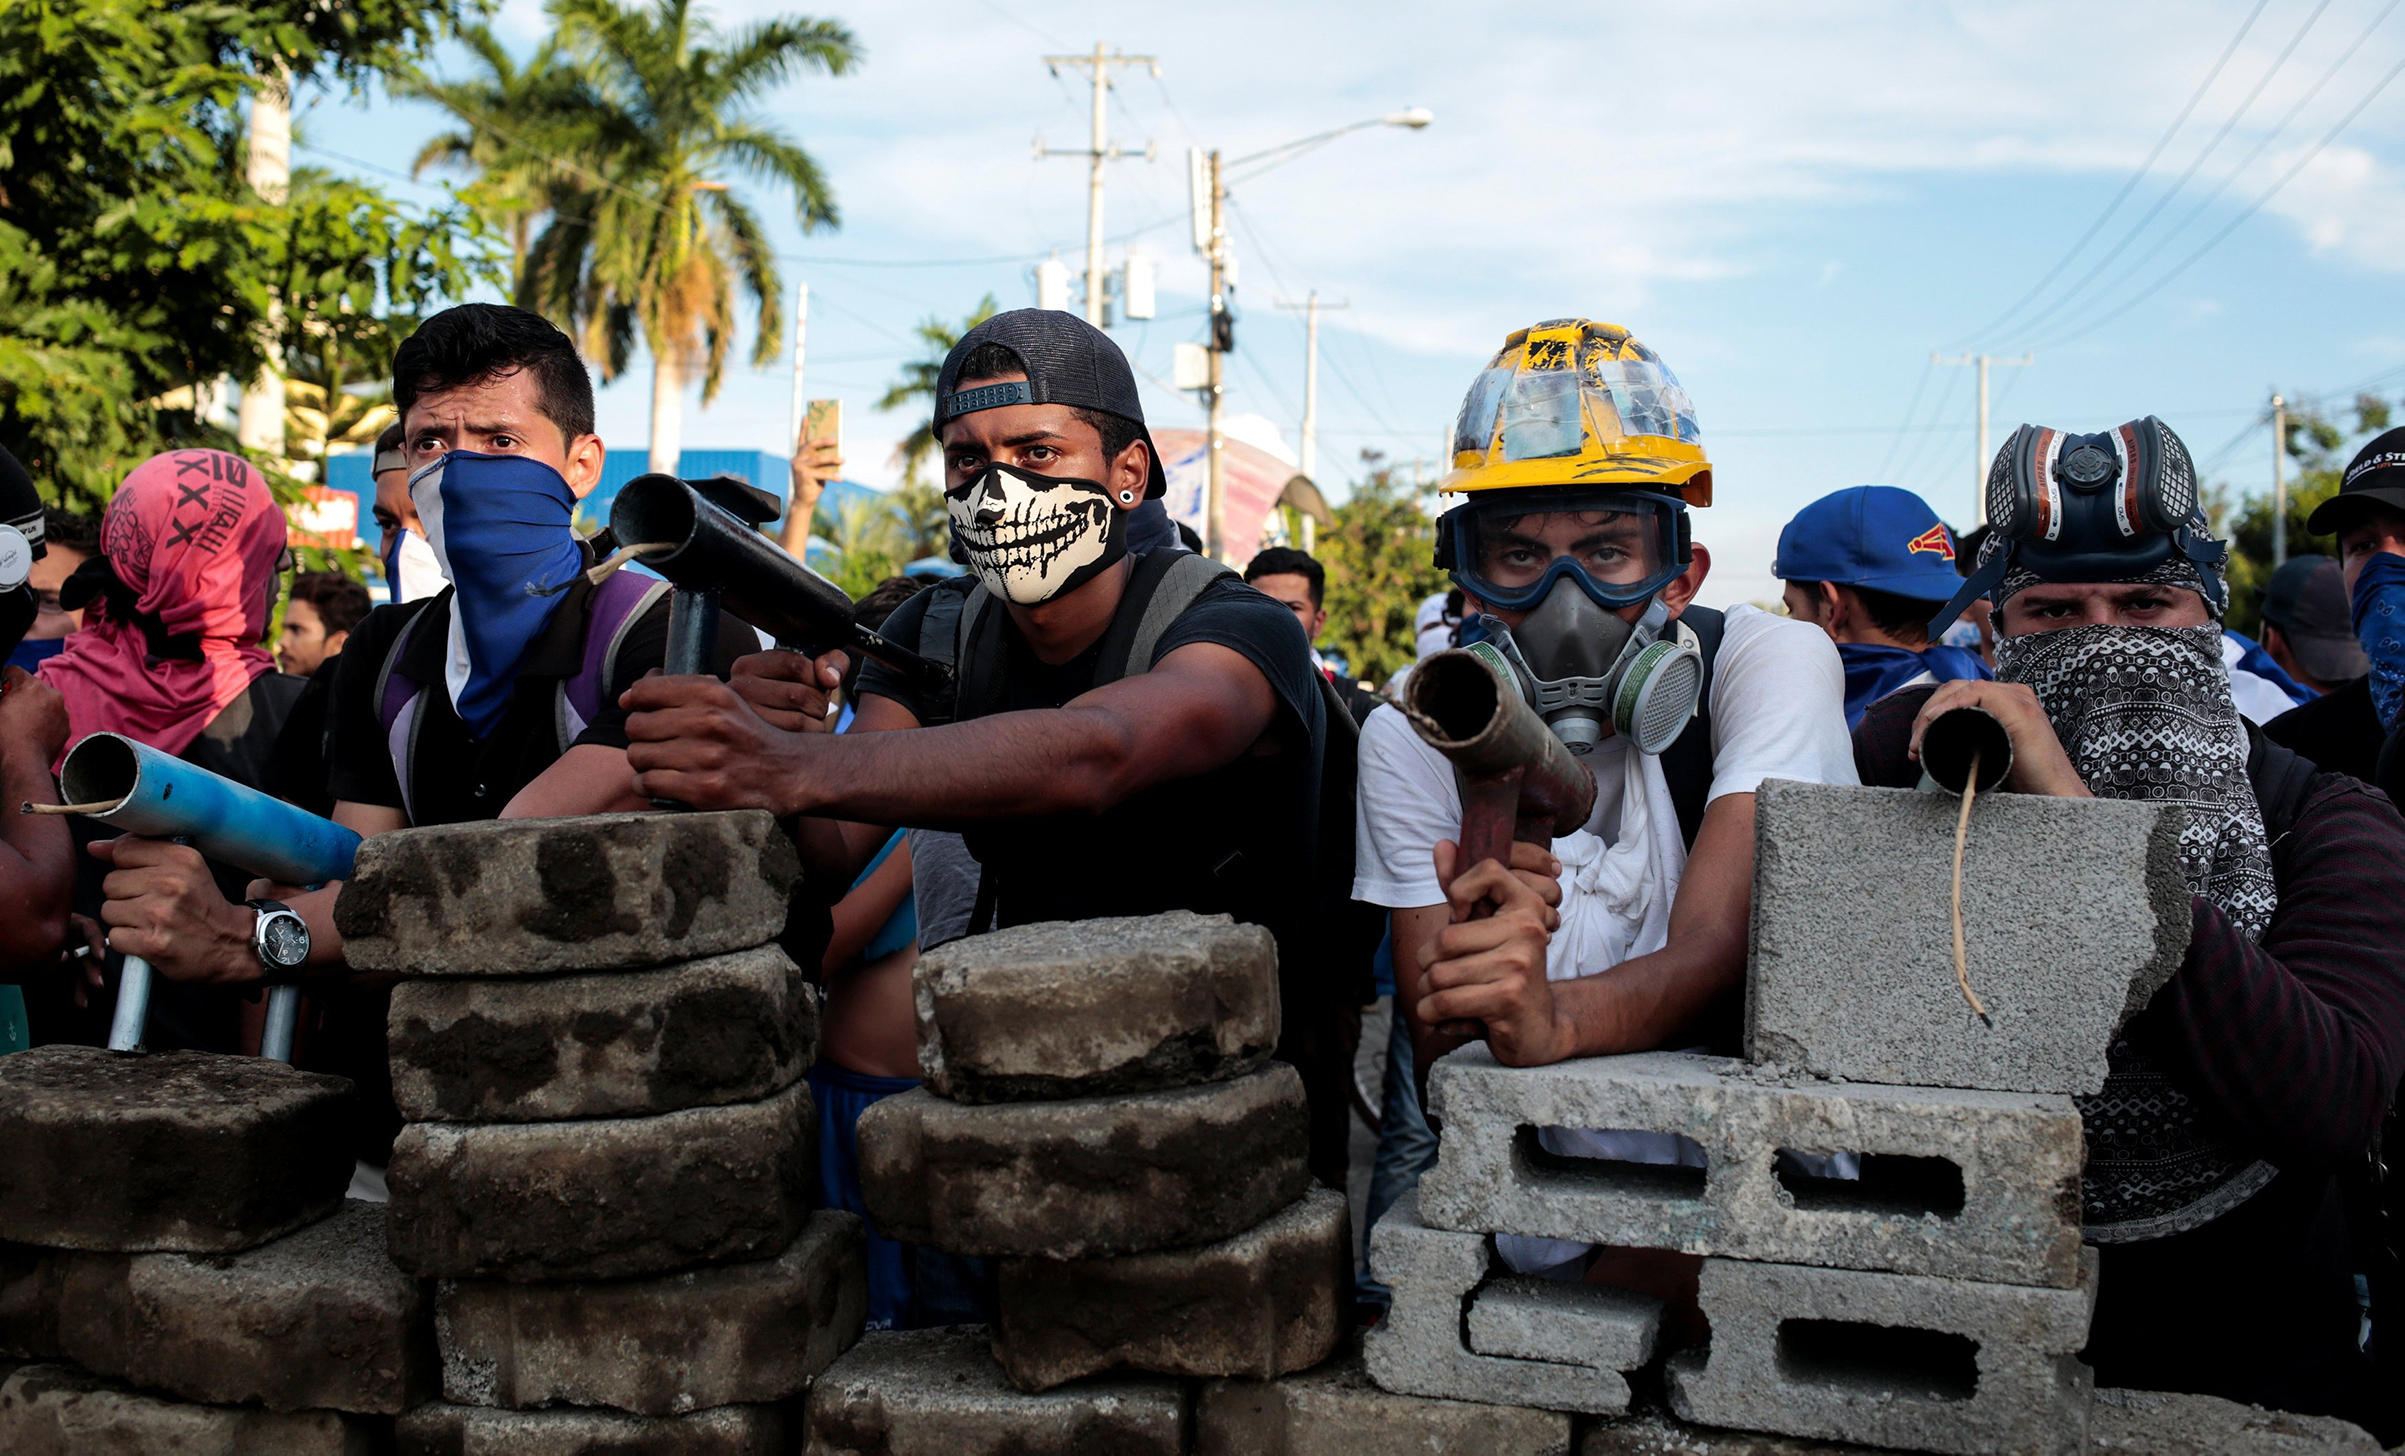 Demonstrators behind a barricade at an antigovernment protest in Managua on May 30